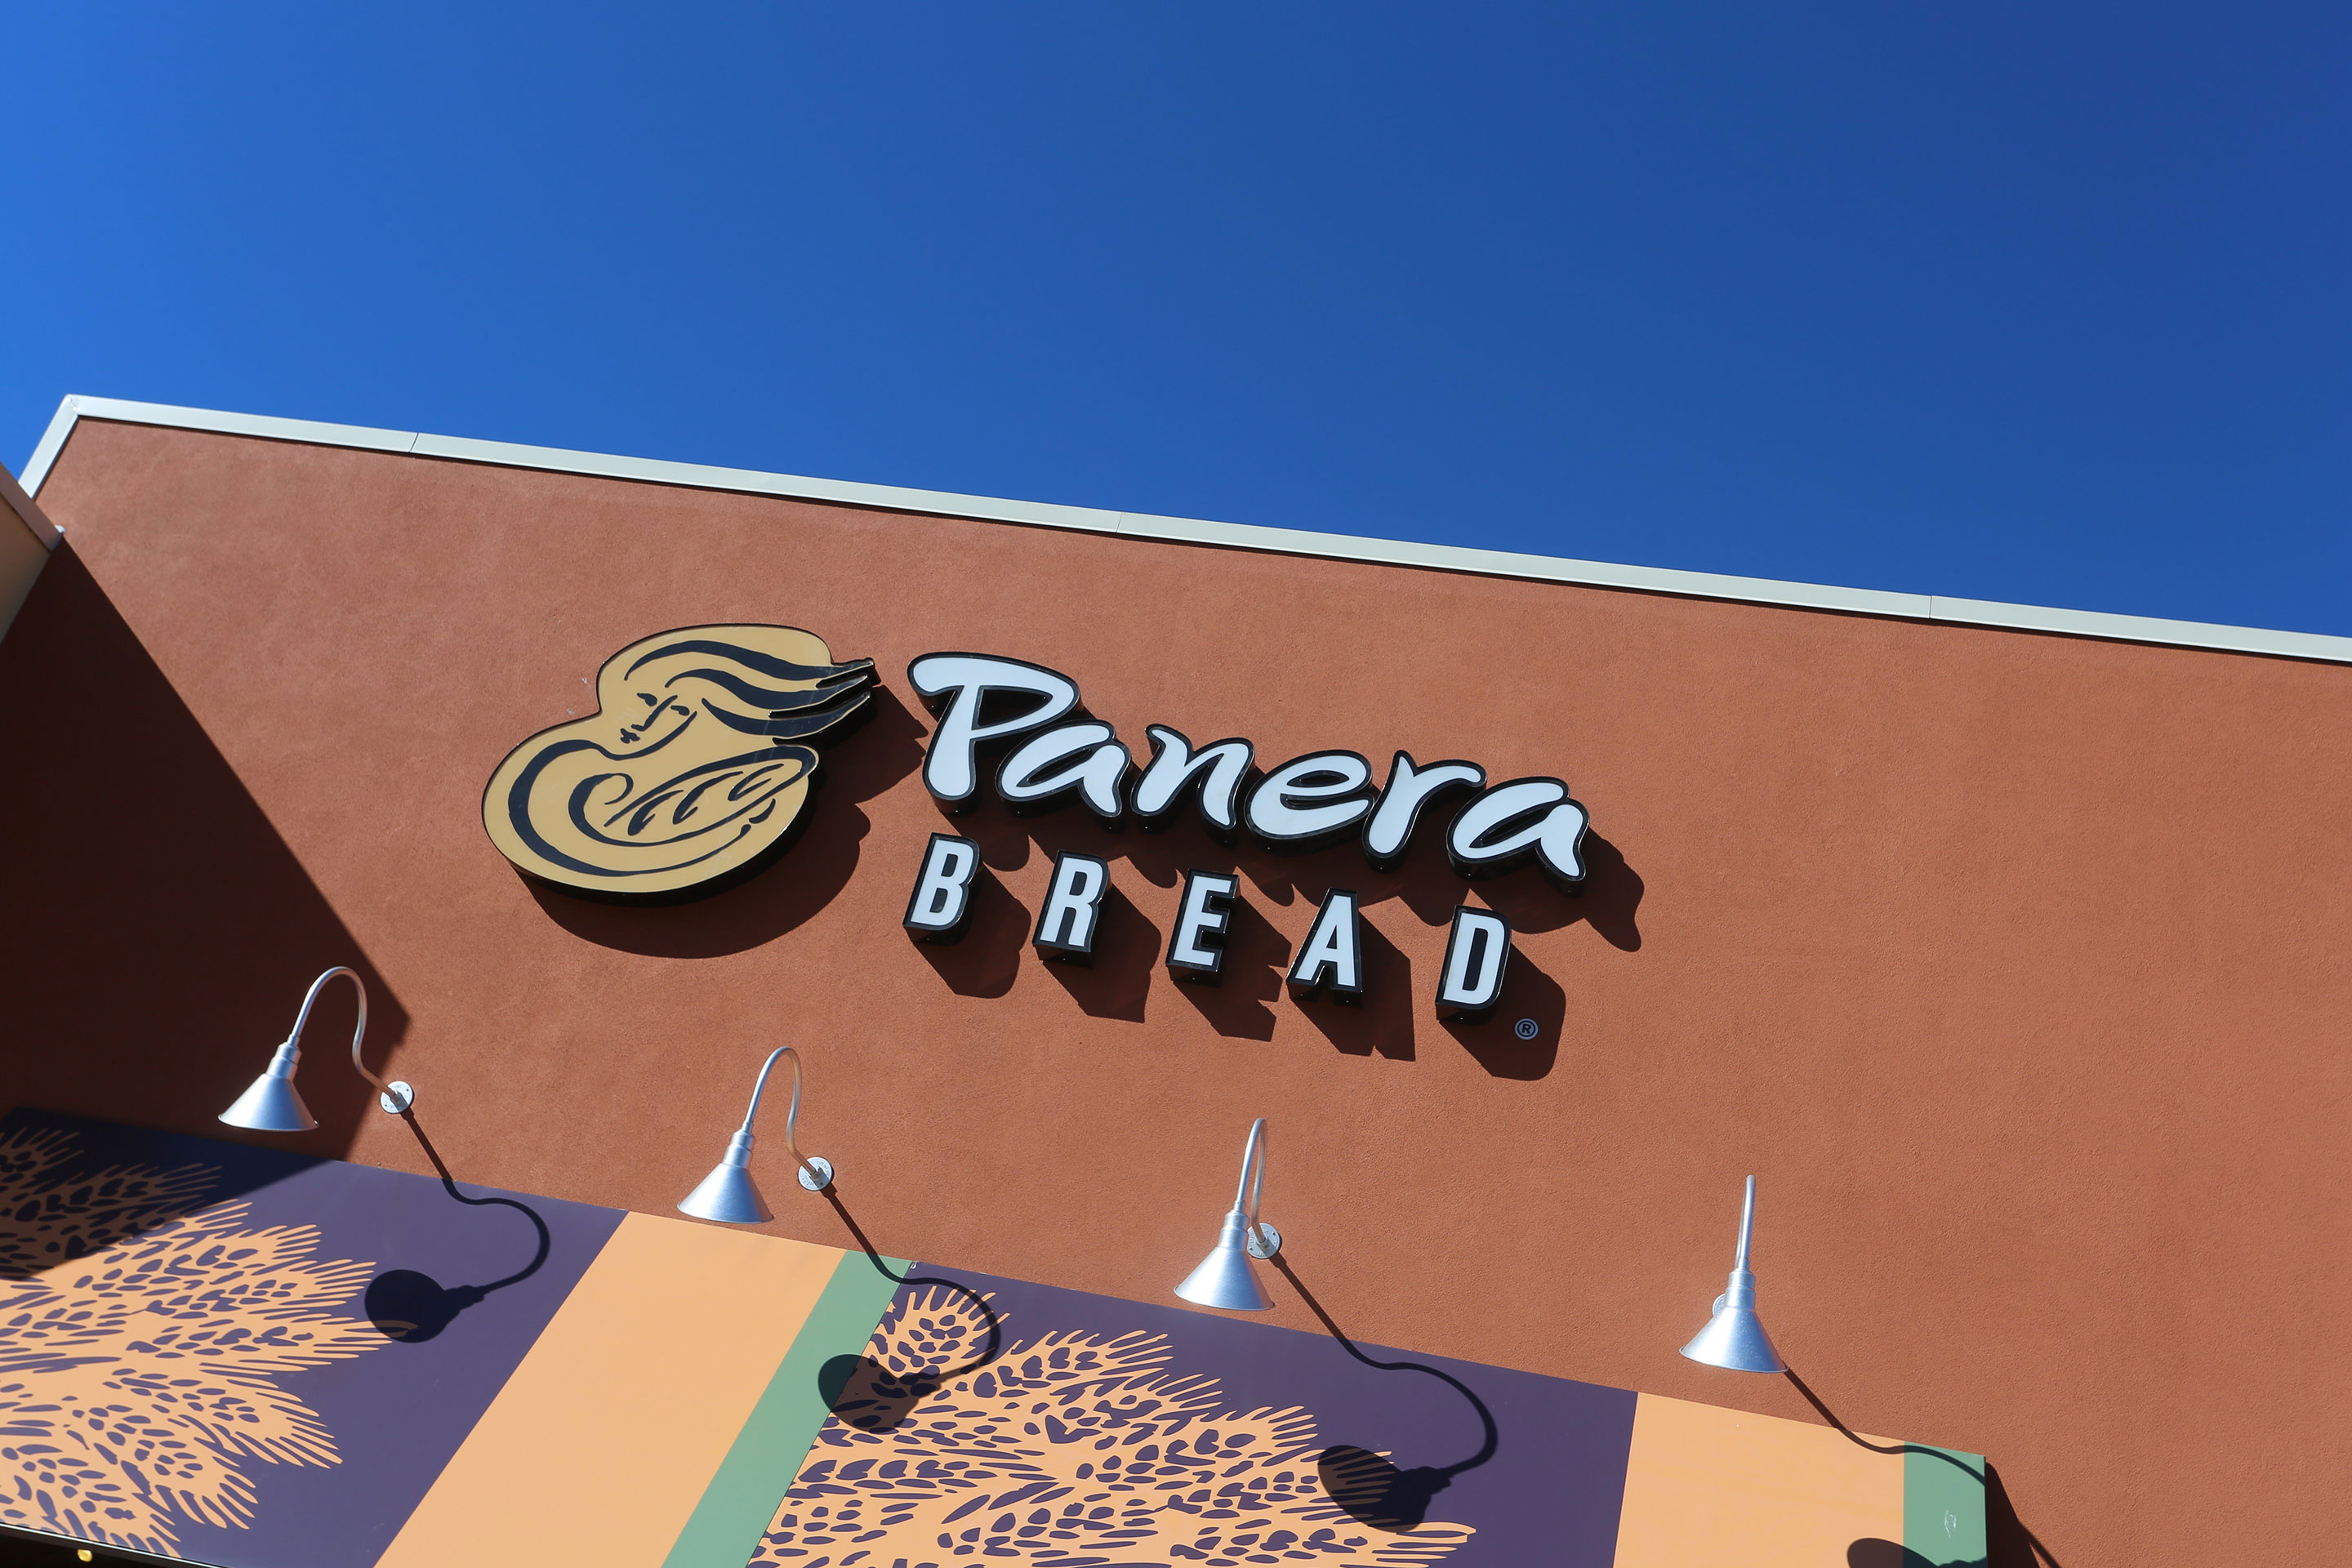 Panera Bread Now Offering Delivery to Hundreds of Cities and Suburbs Nationwide